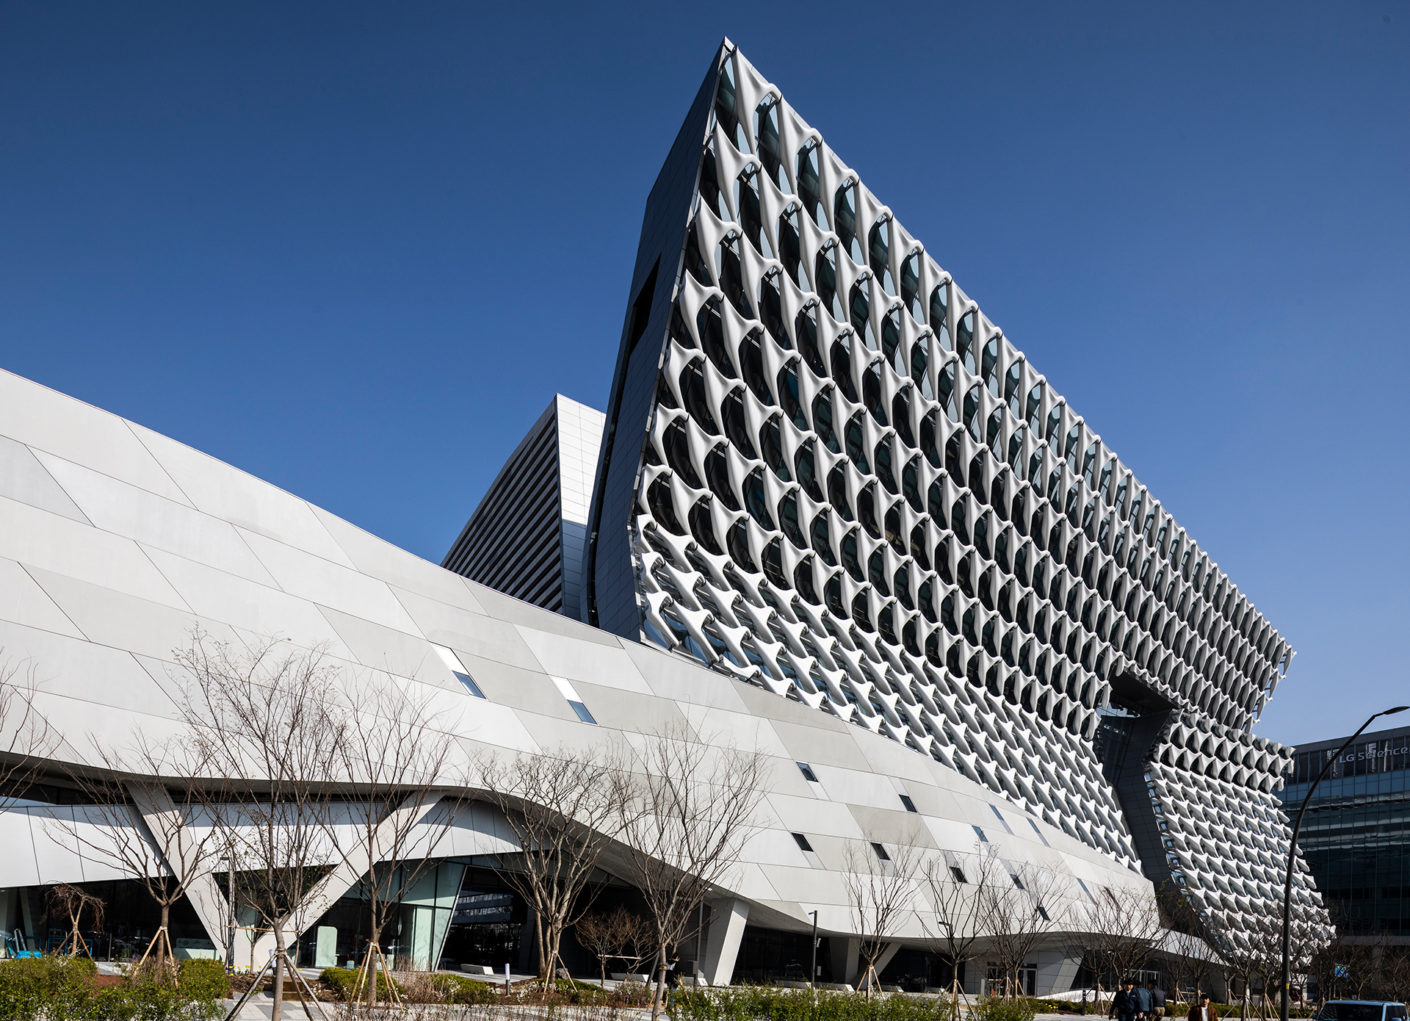 Kolon One & Only Towers in Seoul by Morphosis